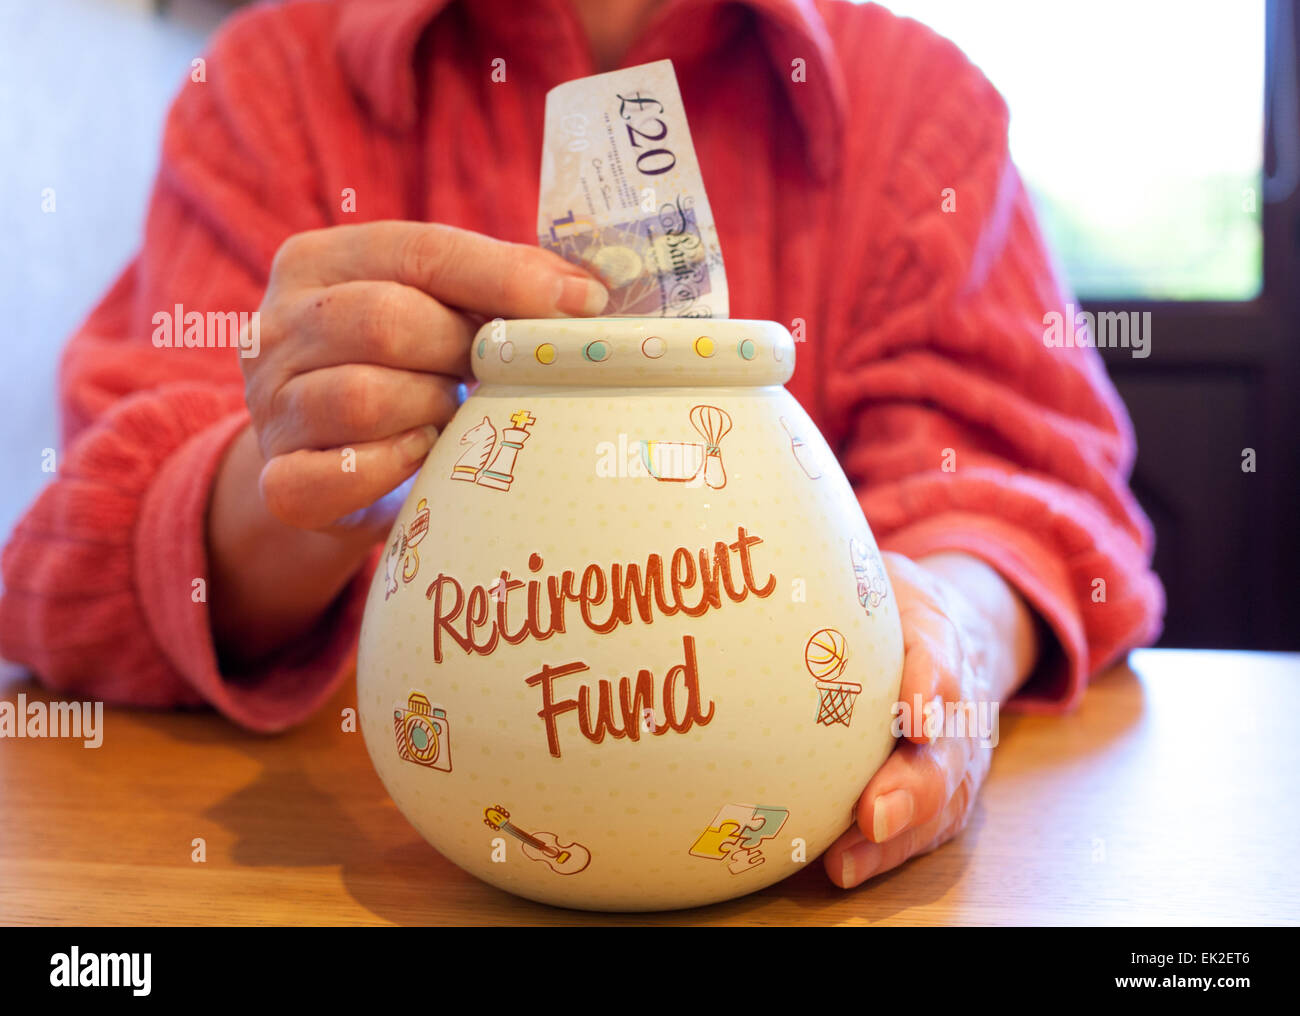 Retirement pension fund savings. - Stock Image